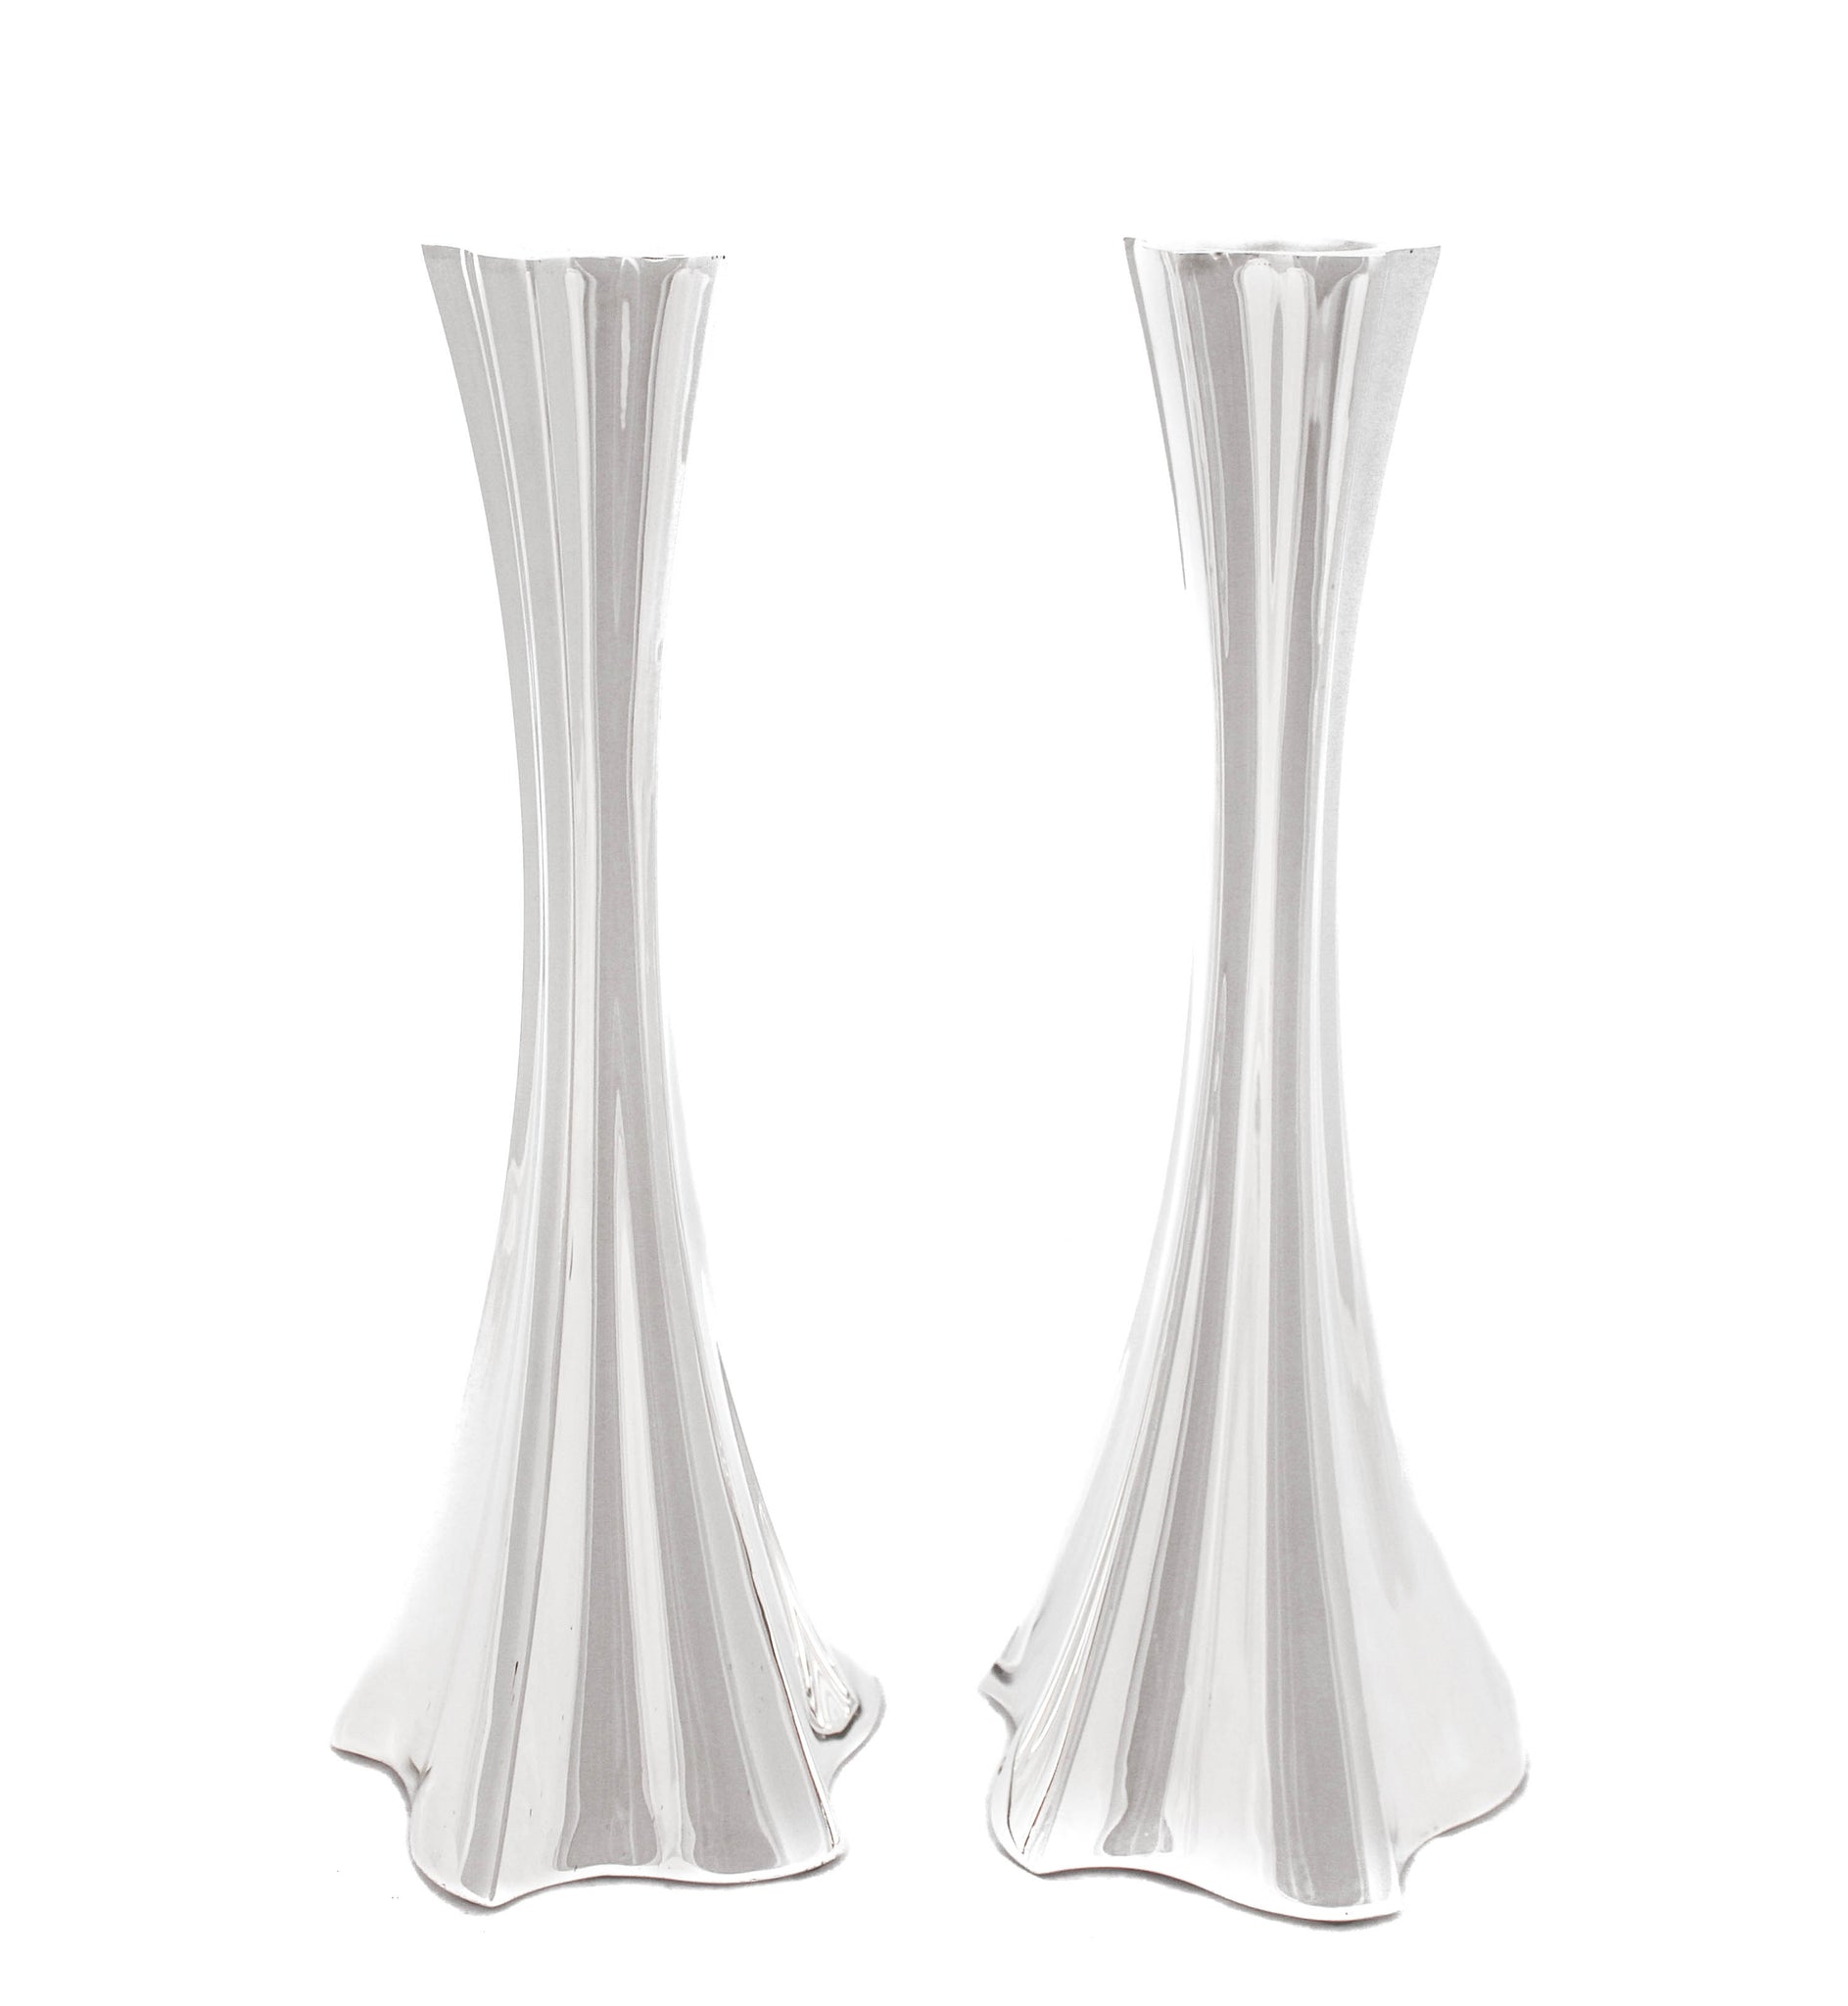 FINE 925 STERLING SILVER VALENCIA CHASED SLEEK MODERN CONTEMPORARY CANDLESTICKS